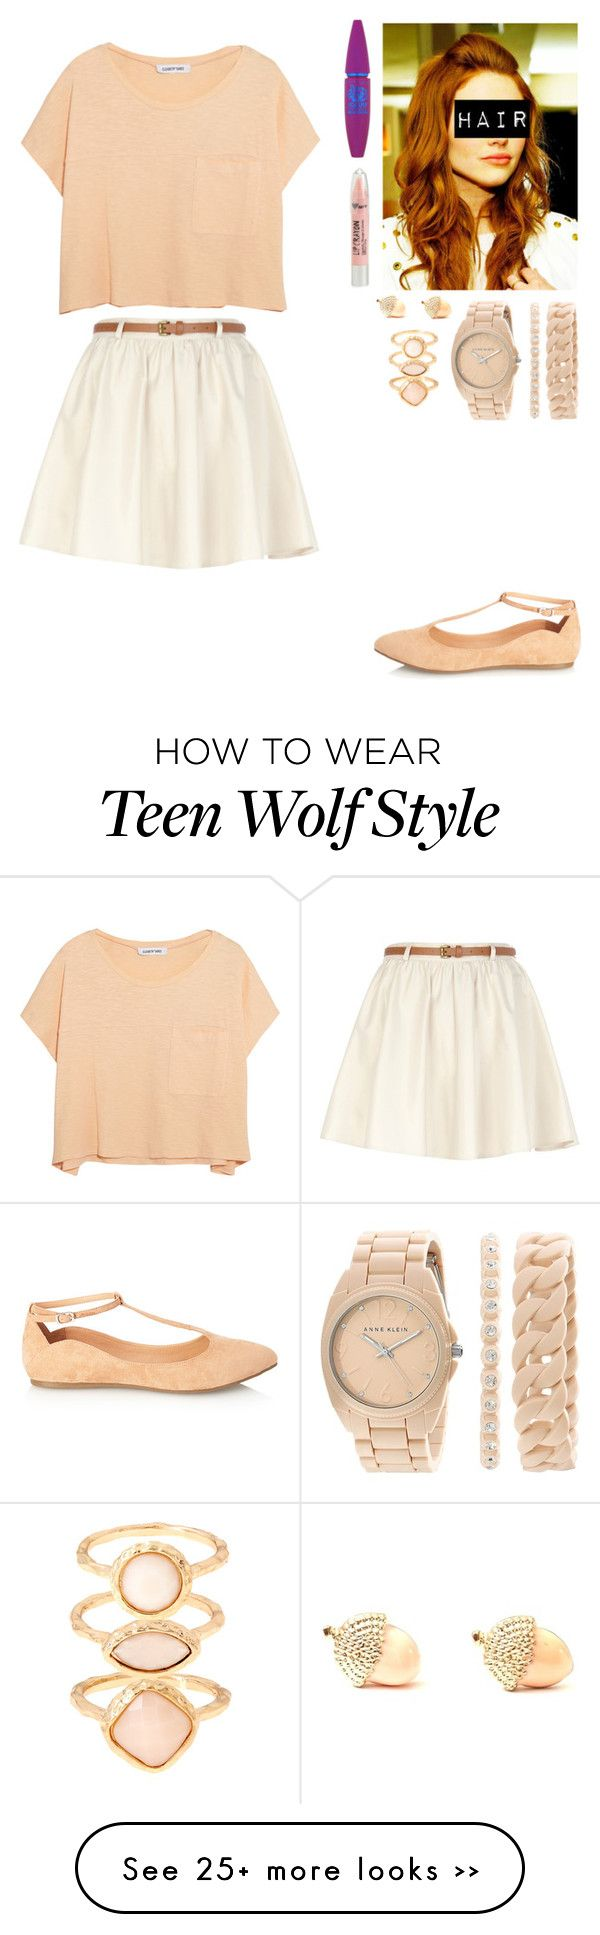 ""\ the indentions of your fingerprints still scar my skin //"" by tangie-leigh on Polyvore featuring Forever 21, River Island, Elizabeth and James, Aéropostale, Maybelline, Monsoon, Anne Klein, beige, pastels and goldjewelry600|1935|?|False|a74ae3dbc334345a5f7701d918da3f67|False|UNLIKELY|0.3164100646972656